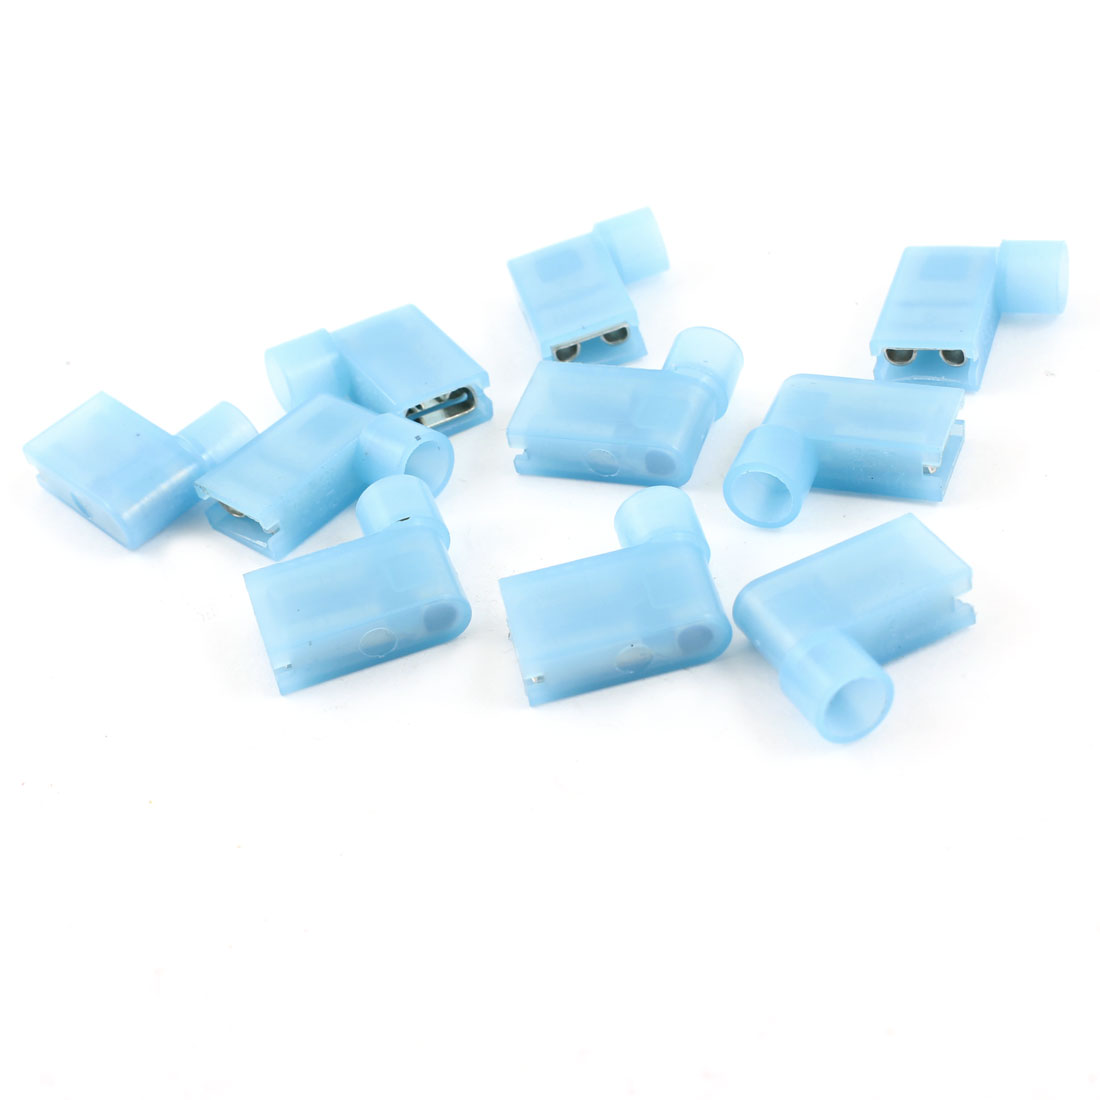 10 Pcs Light Blue Insulated Female Spade Crimp Flag Connector